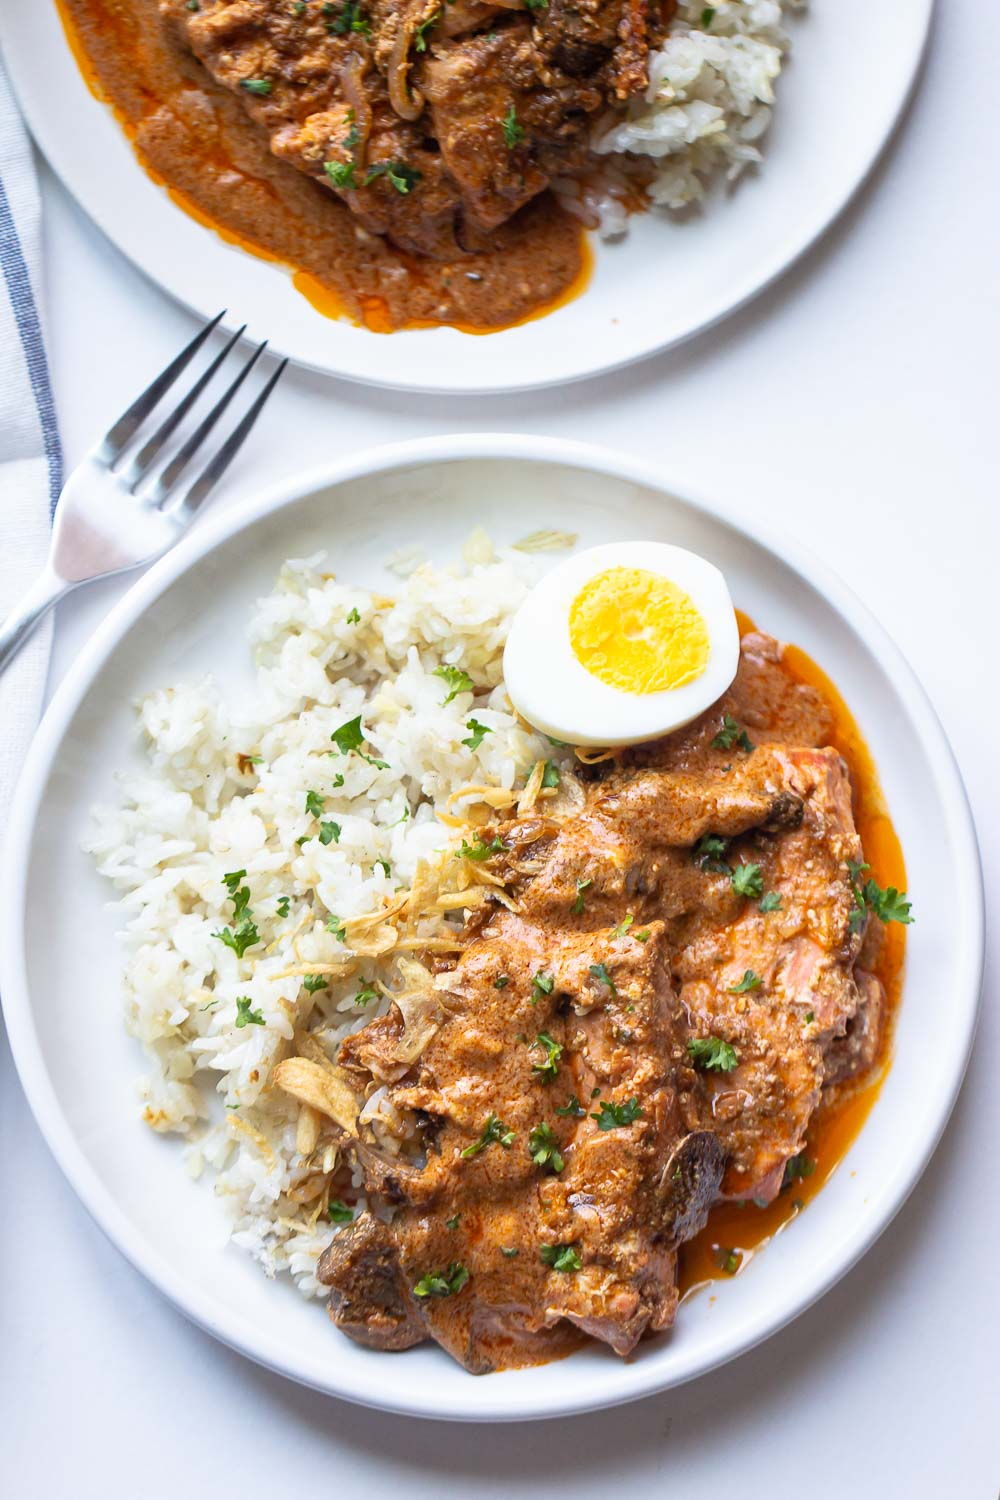 This Salmon Tikka Masala is a flavor-packed, restaurant-quality dish that you can have ready in no time! Serve it over basmati rice, garlic rice, or enjoy with naan for a delicious dinner. Why go out when you can make it better at home!?